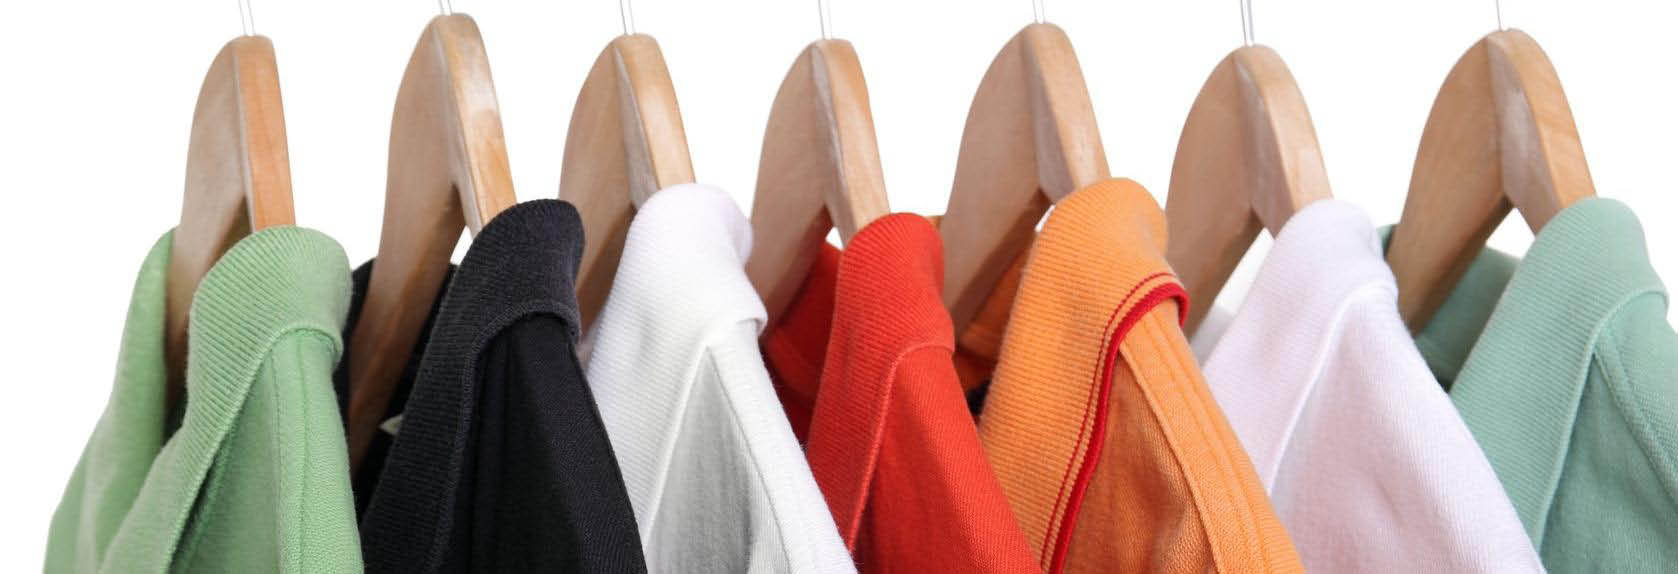 Dunbrook Cleaners Dry Cleaning Shirts Tailor Northbrook